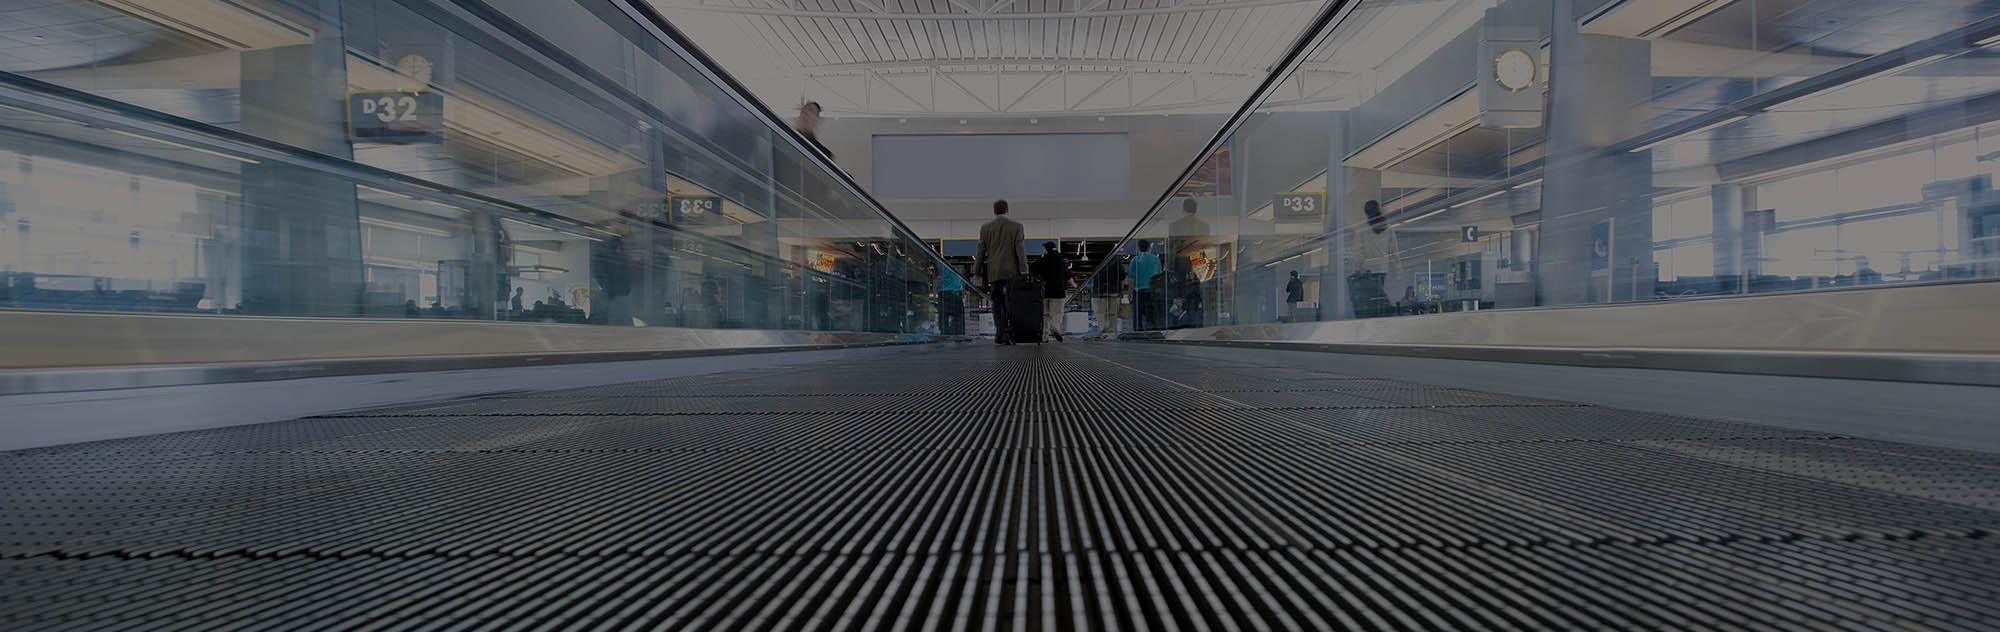 People walking on airport conveyor belt walkway